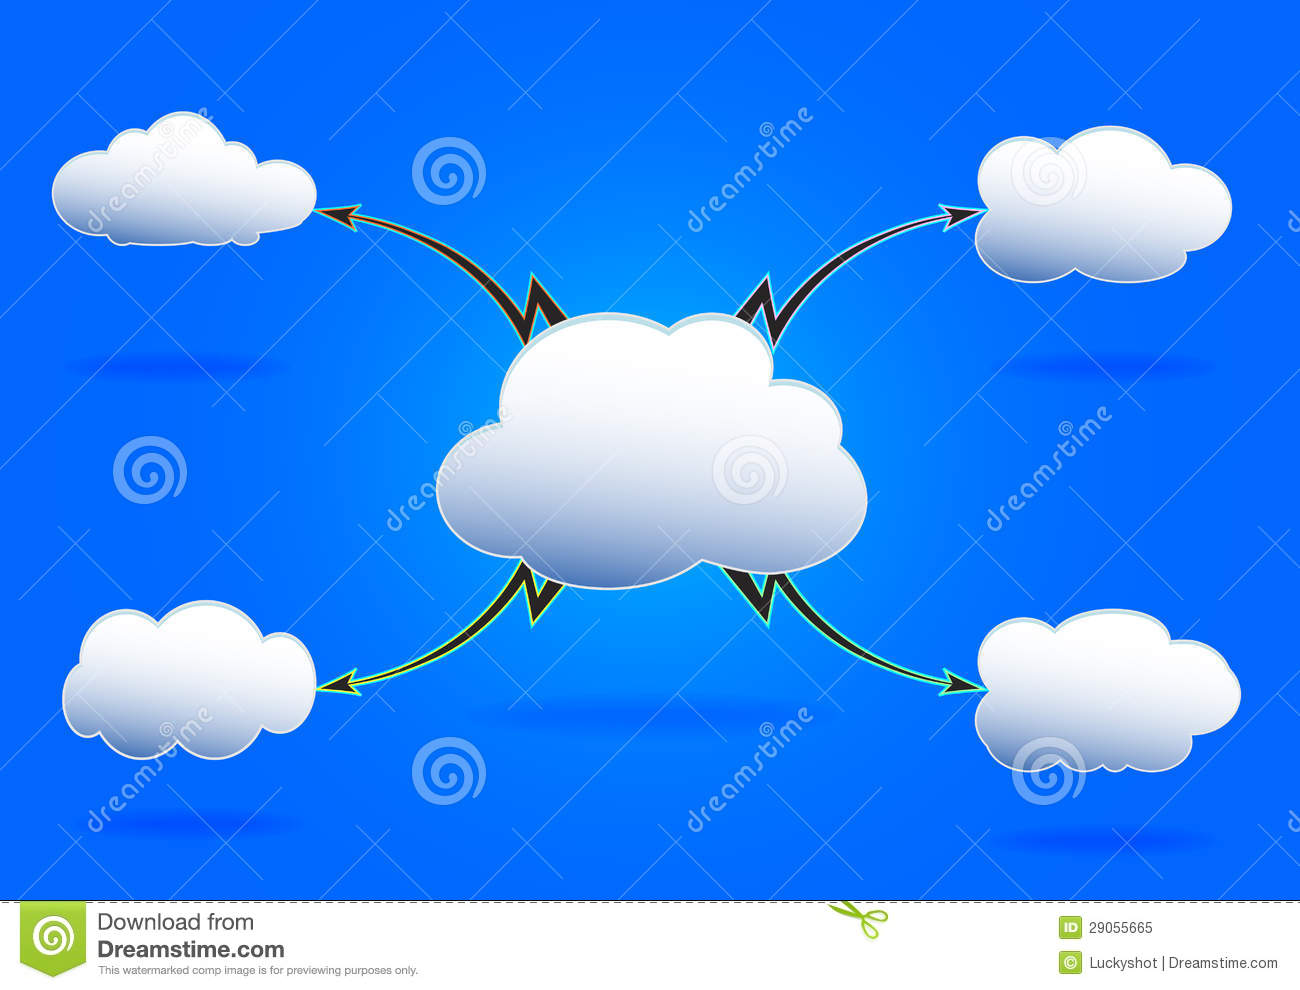 Editable Mind Map With White Clouds And Lighting Royalty Free Stock ...